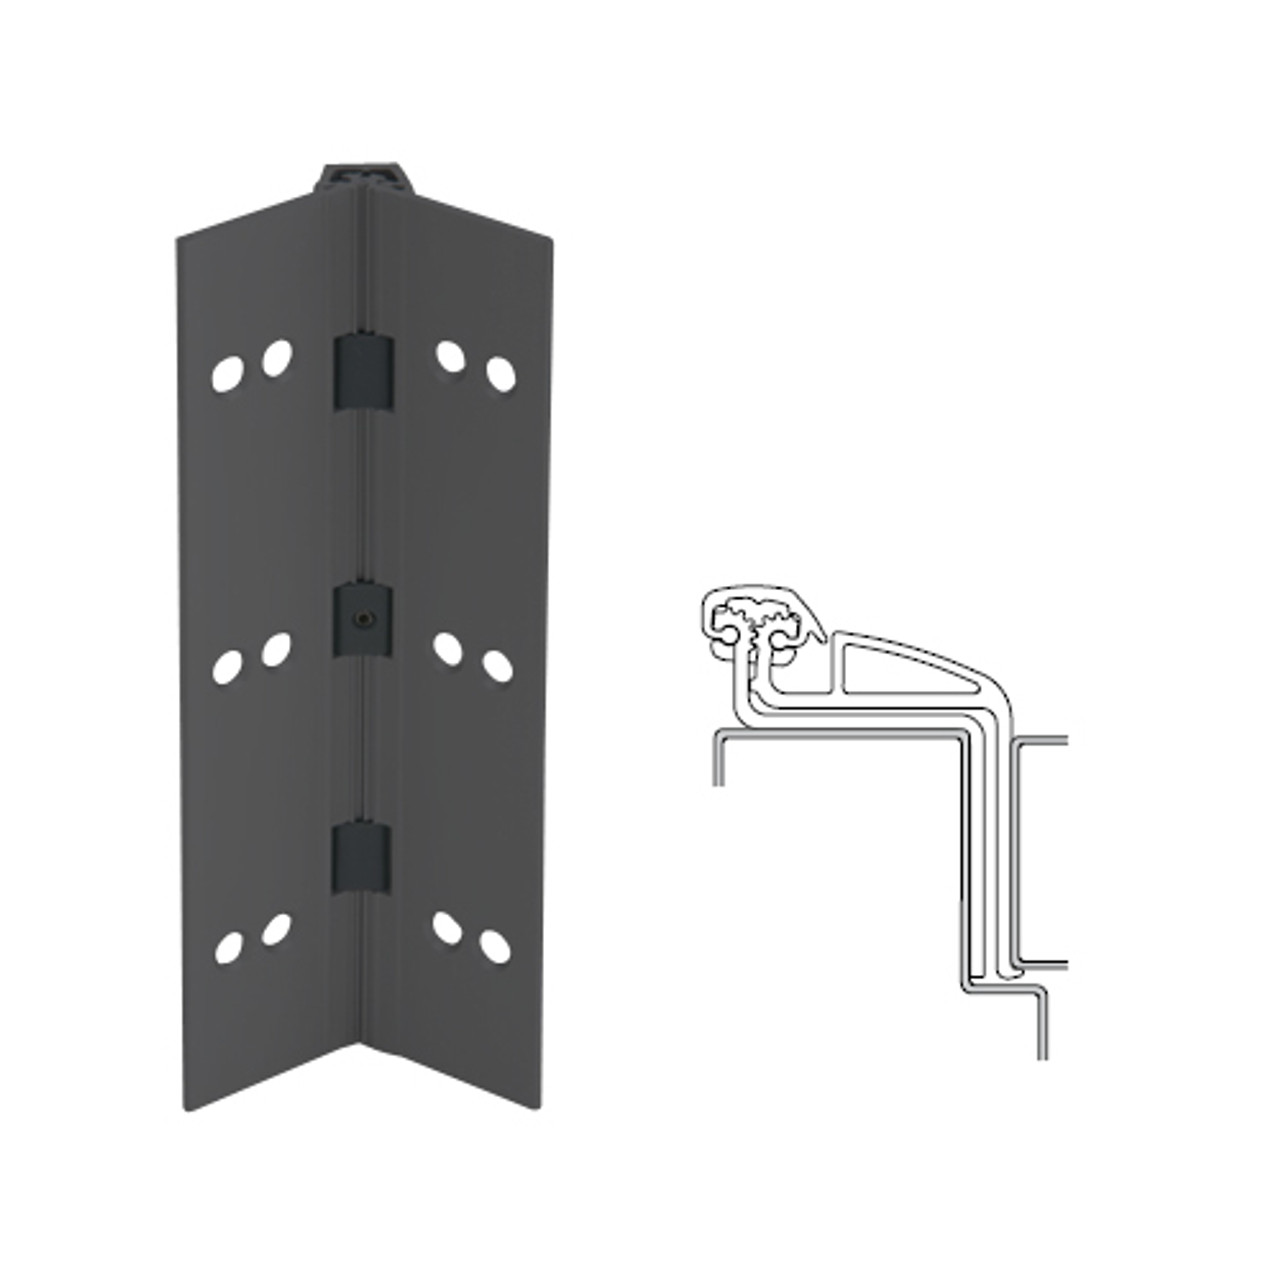 041XY-315AN-120-TEKWD IVES Full Mortise Continuous Geared Hinges with Wood Screws in Anodized Black